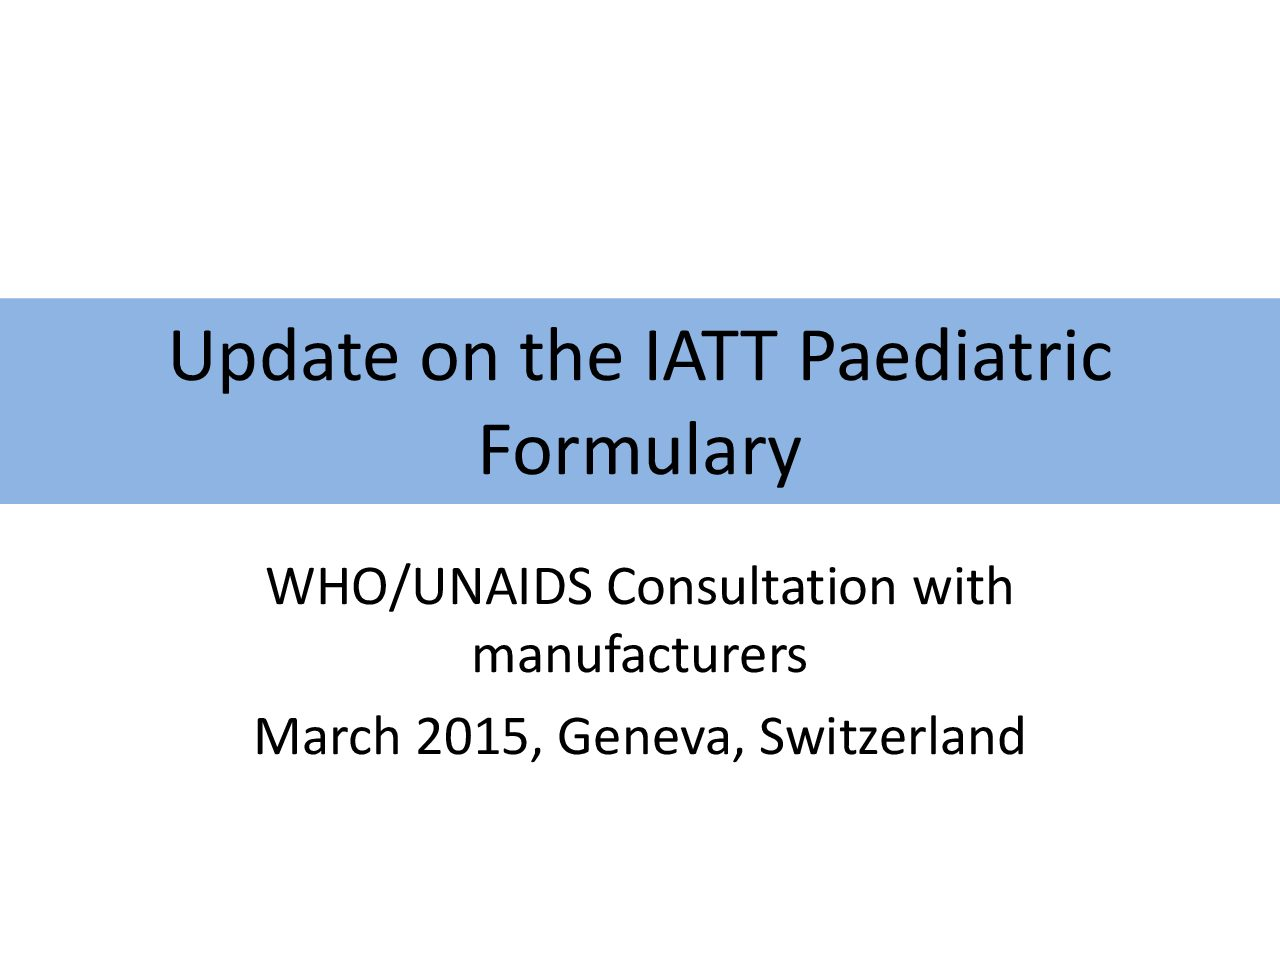 Update on the IATT Paediatric Formulary